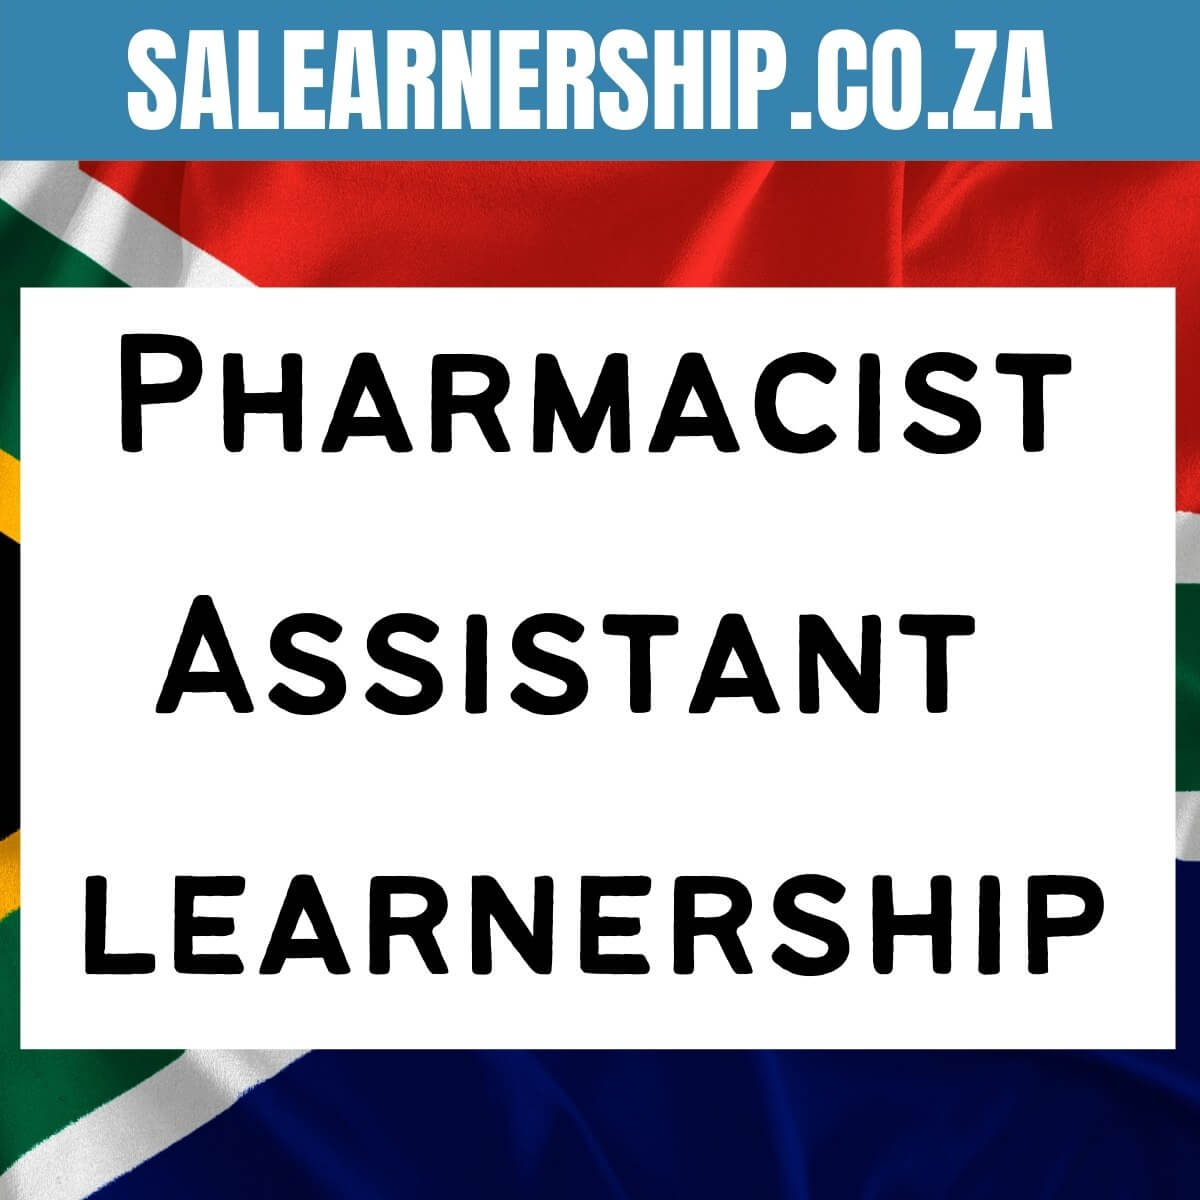 pharmacists assistant learnership